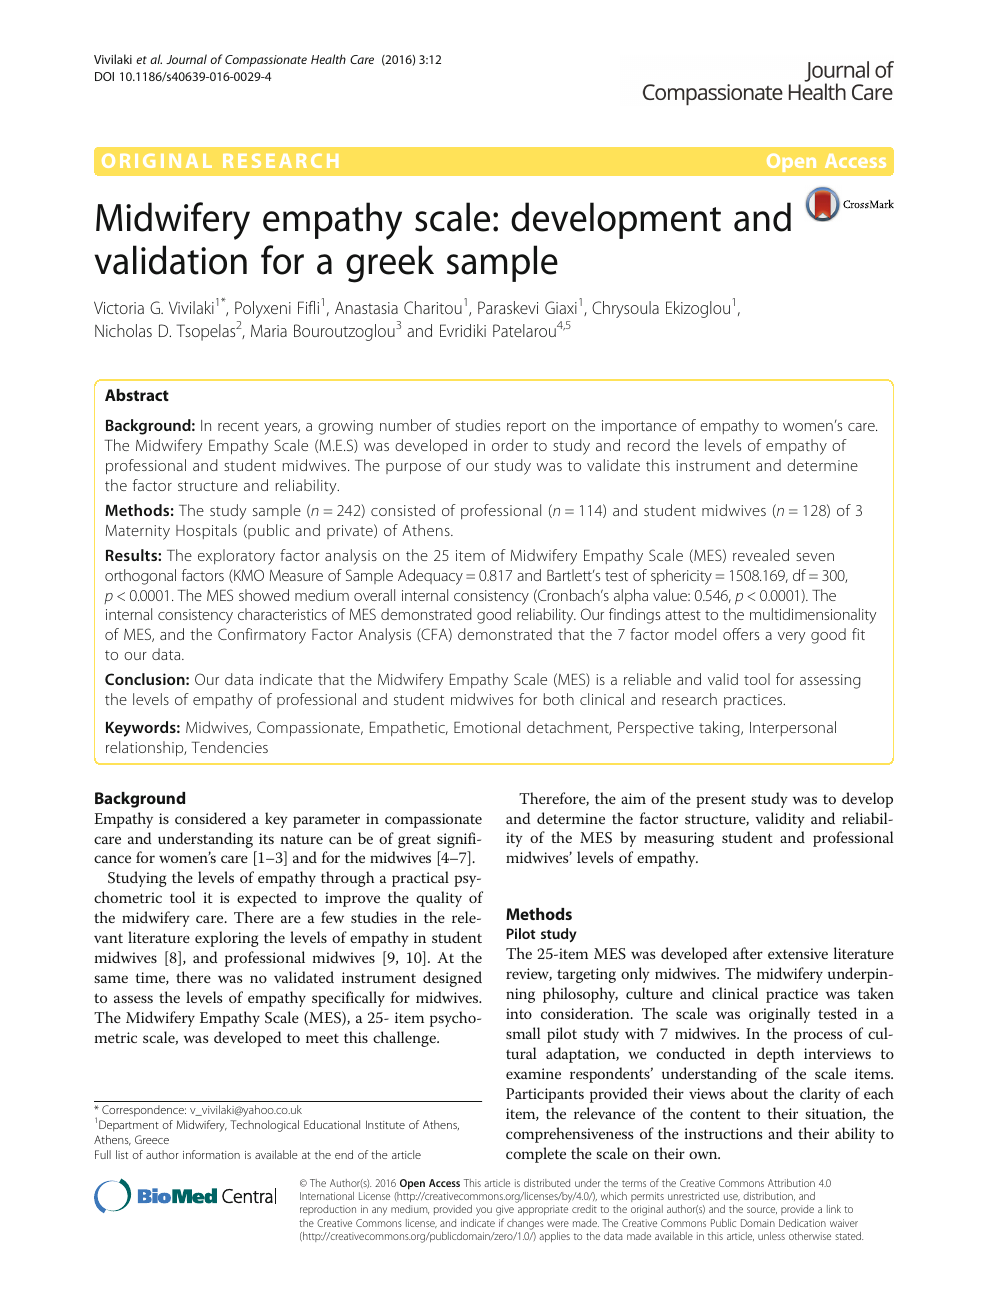 Midwifery empathy scale: development and validation for a